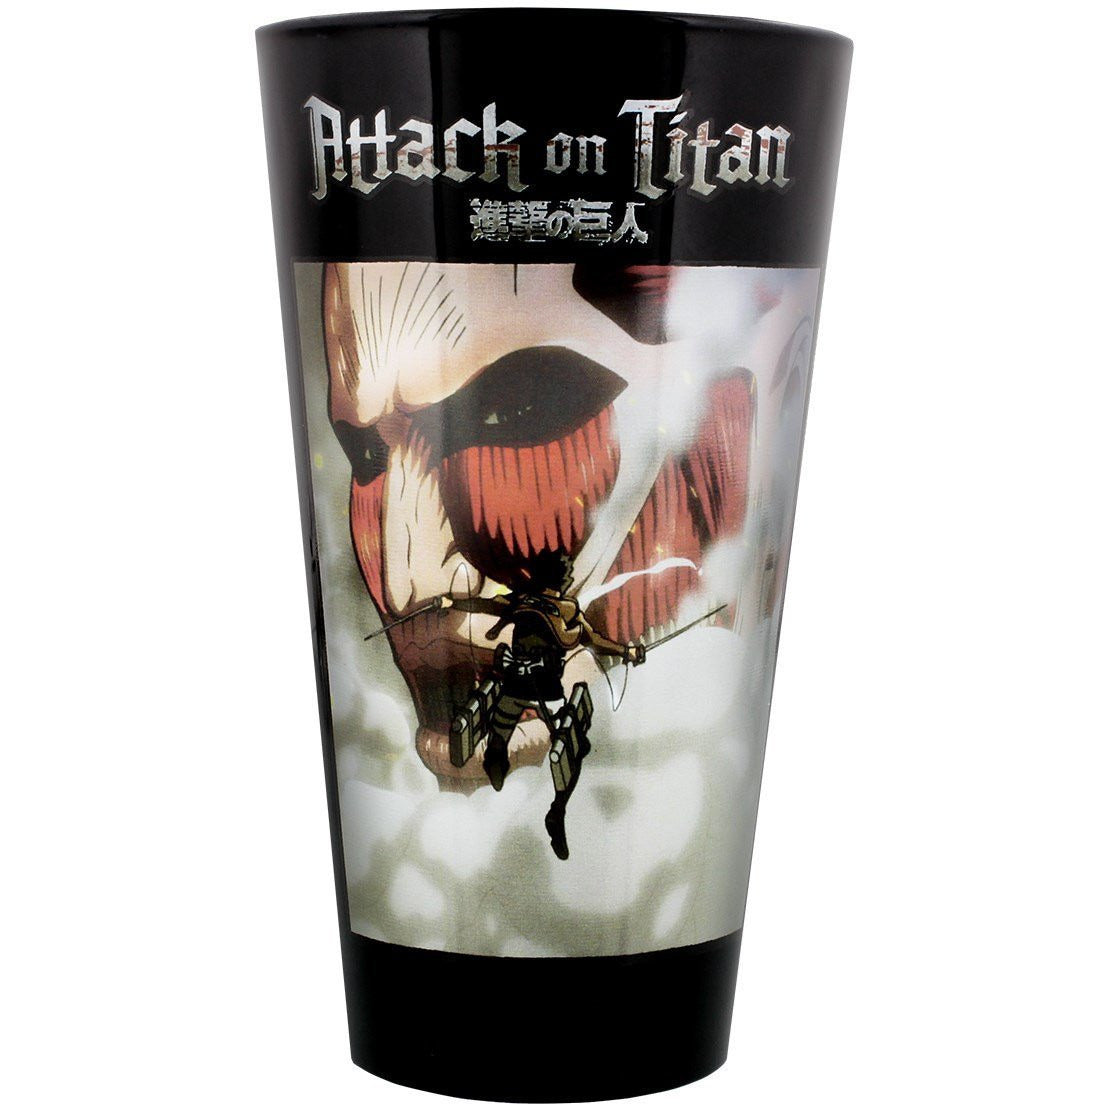 Attack on Titan Erin and Titan Pint Glass Uncanny!